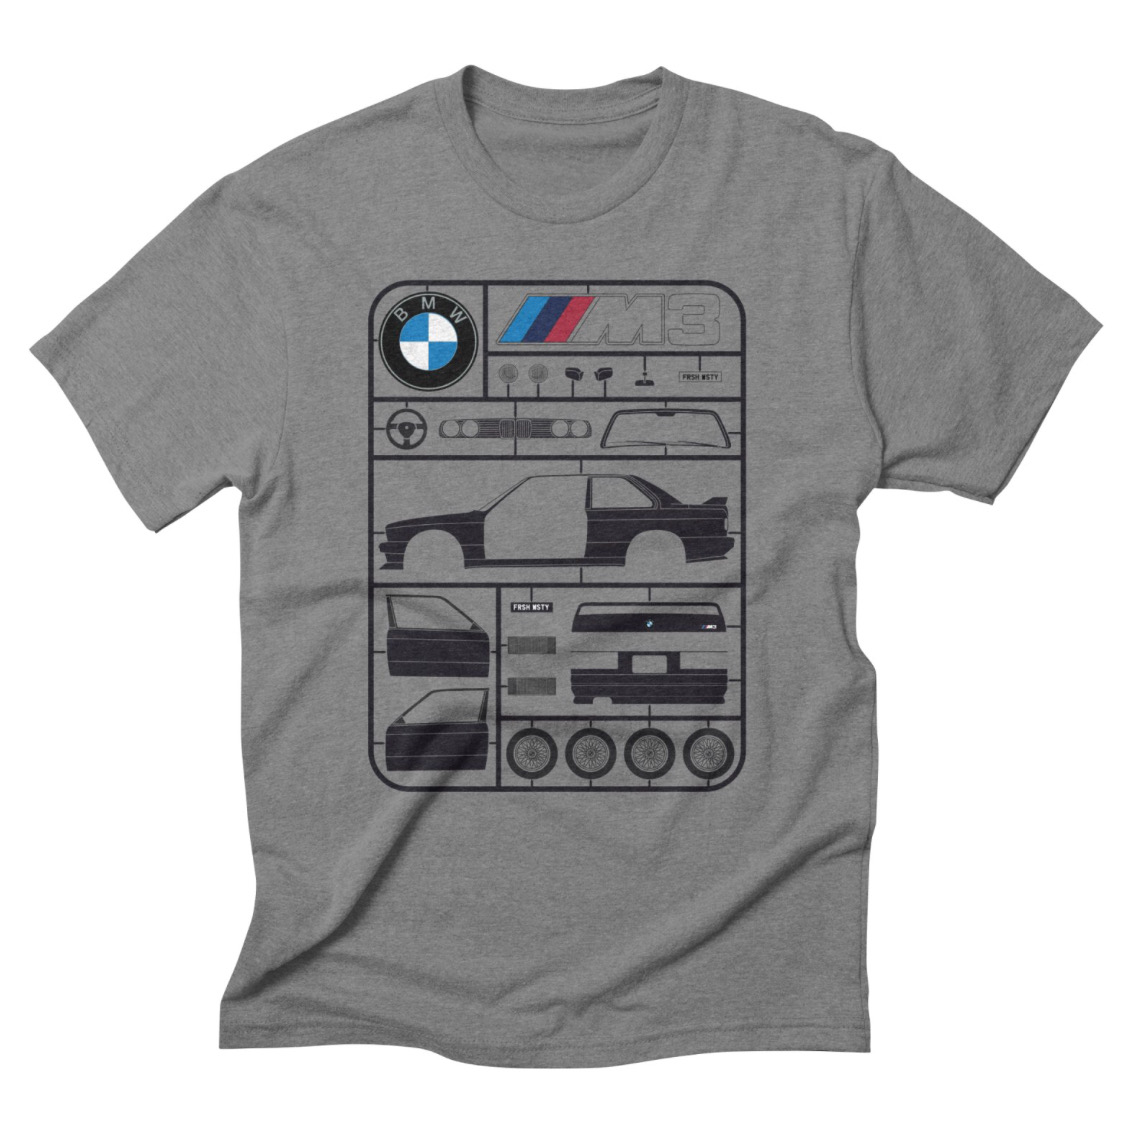 s my teeherivar in bmw product shirts its dna shirt it t